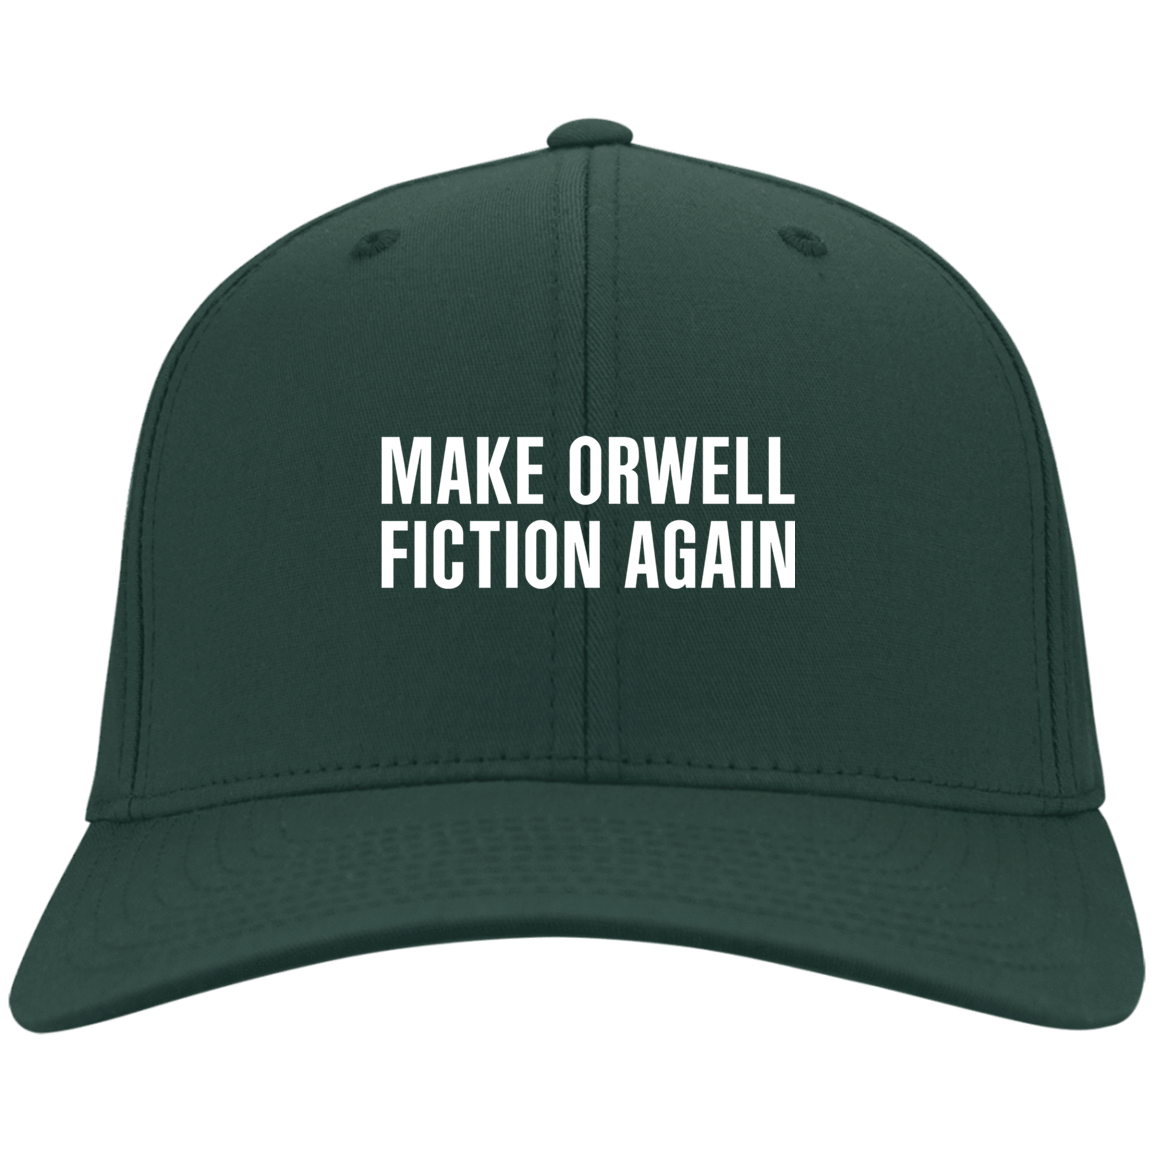 Make Orwell Fiction Again Hat 10-55-74169573-85 - Tee Ript